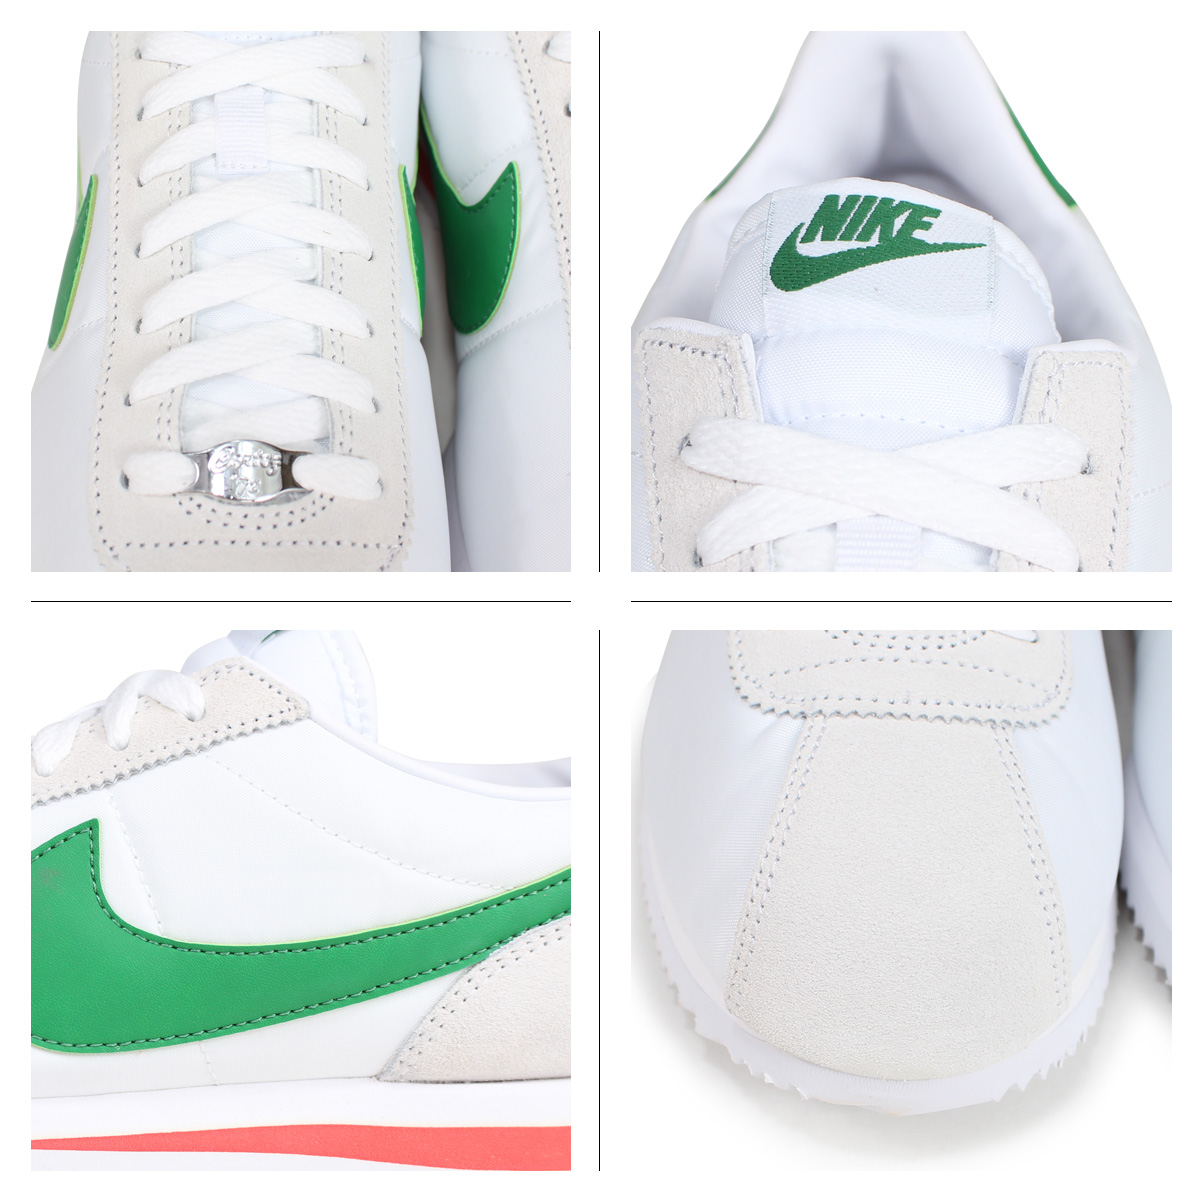 innovative design a815b f25c3 NIKE CORTEZ BASIC NYLON ナイキコルテッツスニーカーメンズ 819,720-103 white  load planned  Shinnyu load in reservation product 7 19 containing   187